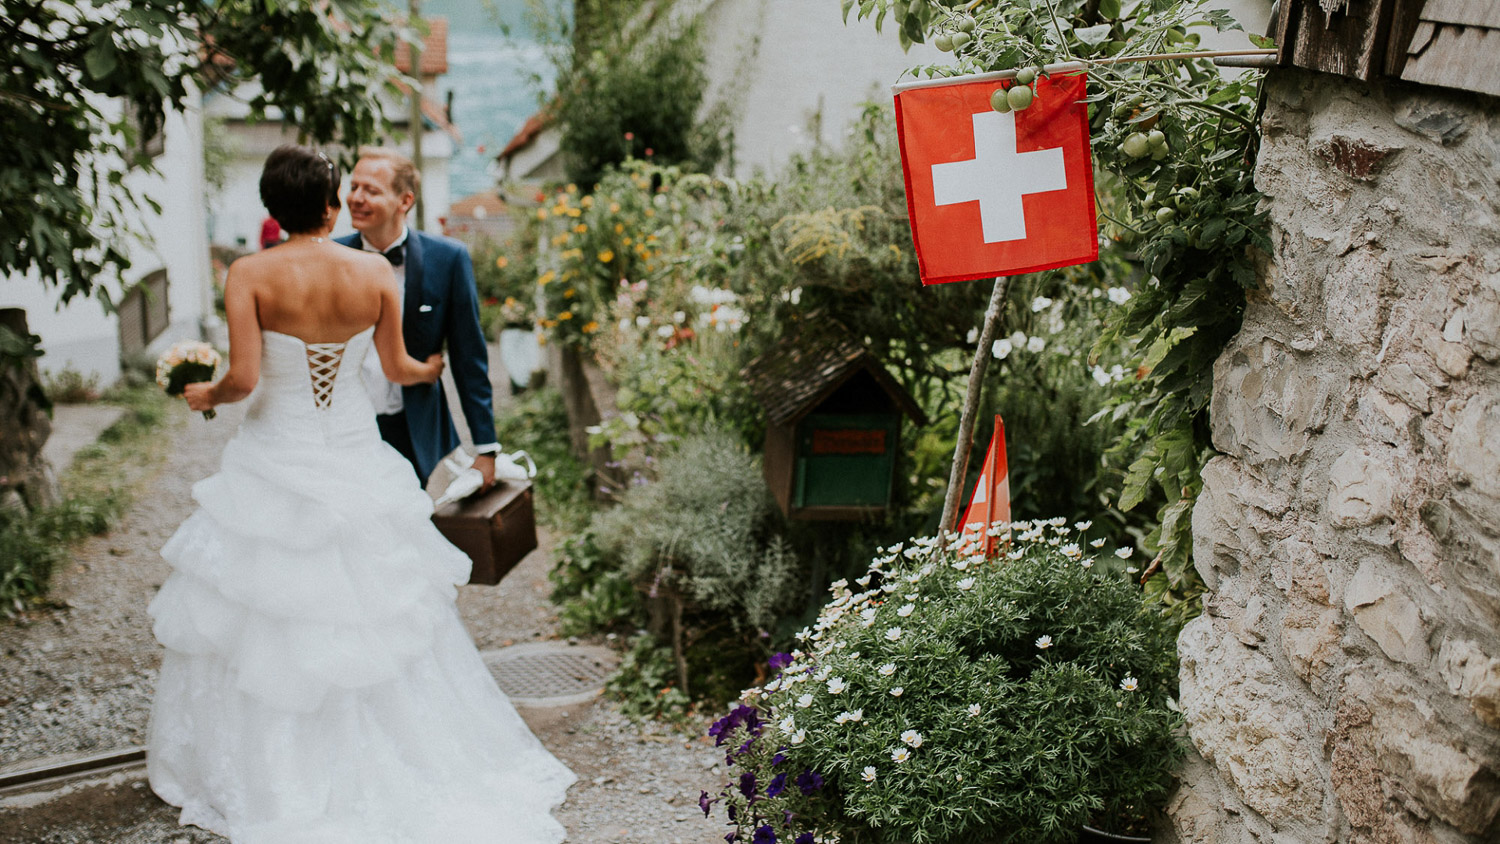 Wedding photographer Zurich - True Love Photography